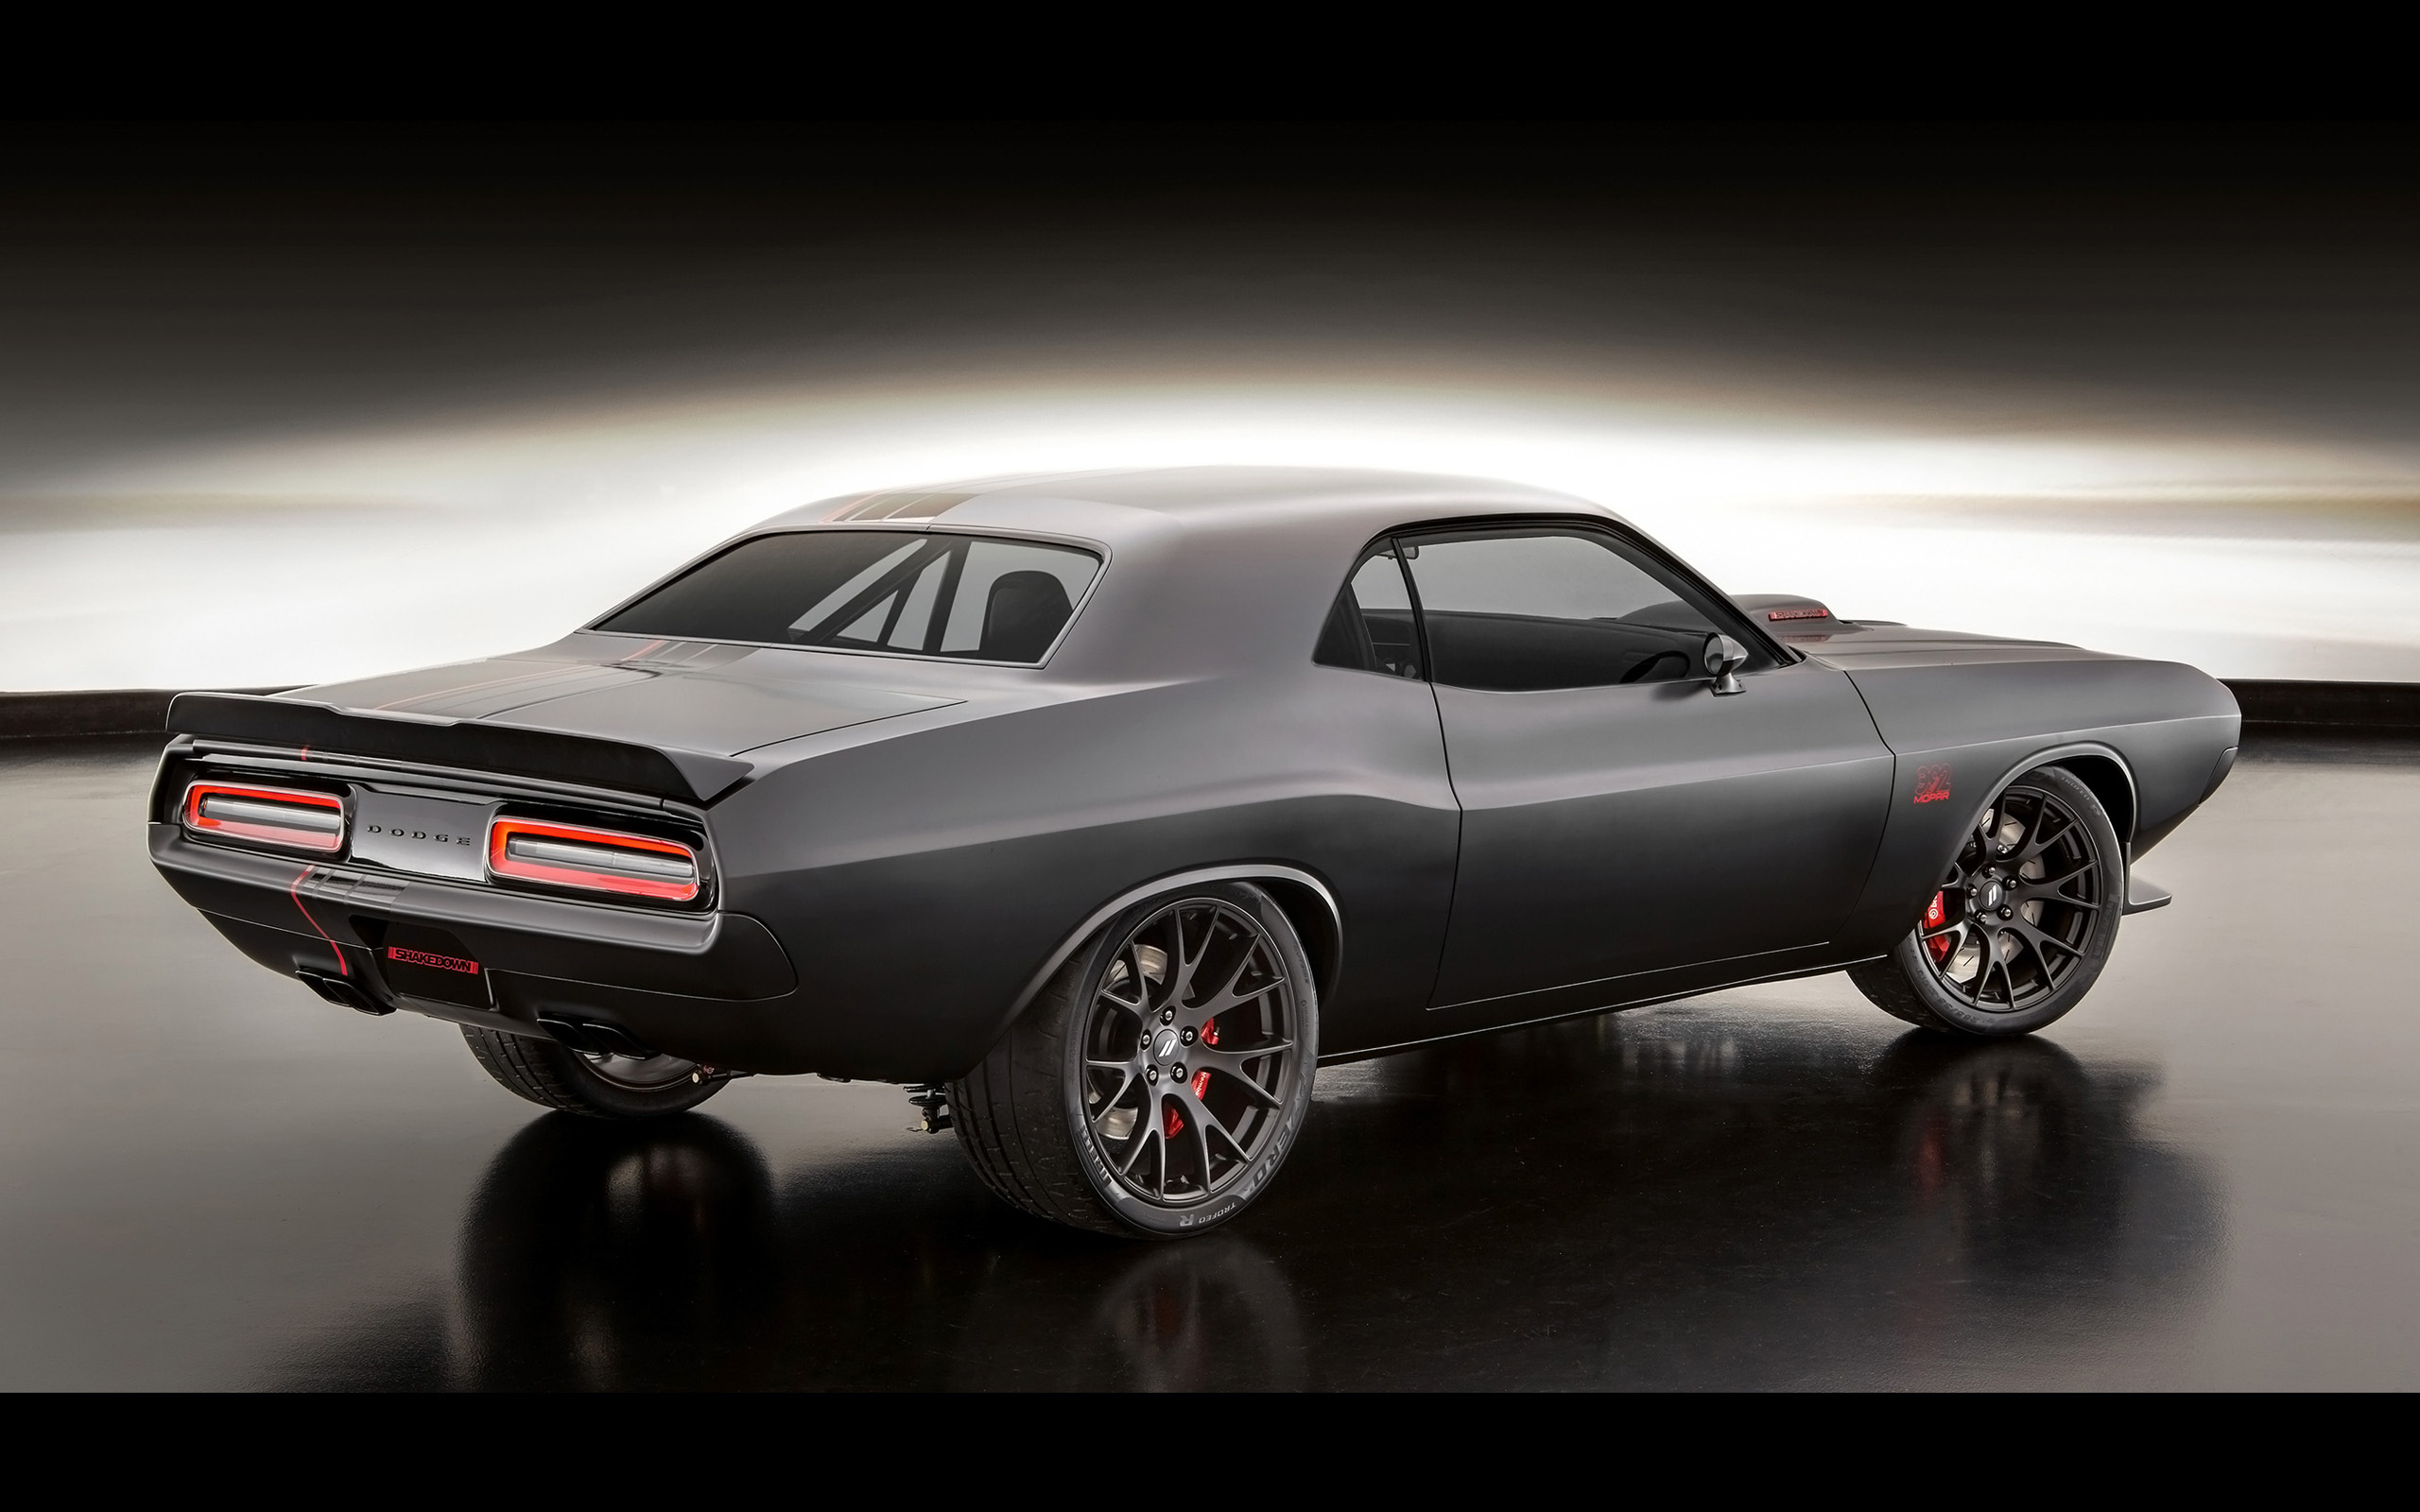 Dodge Challenger Full HD Wallpaper And Background Image